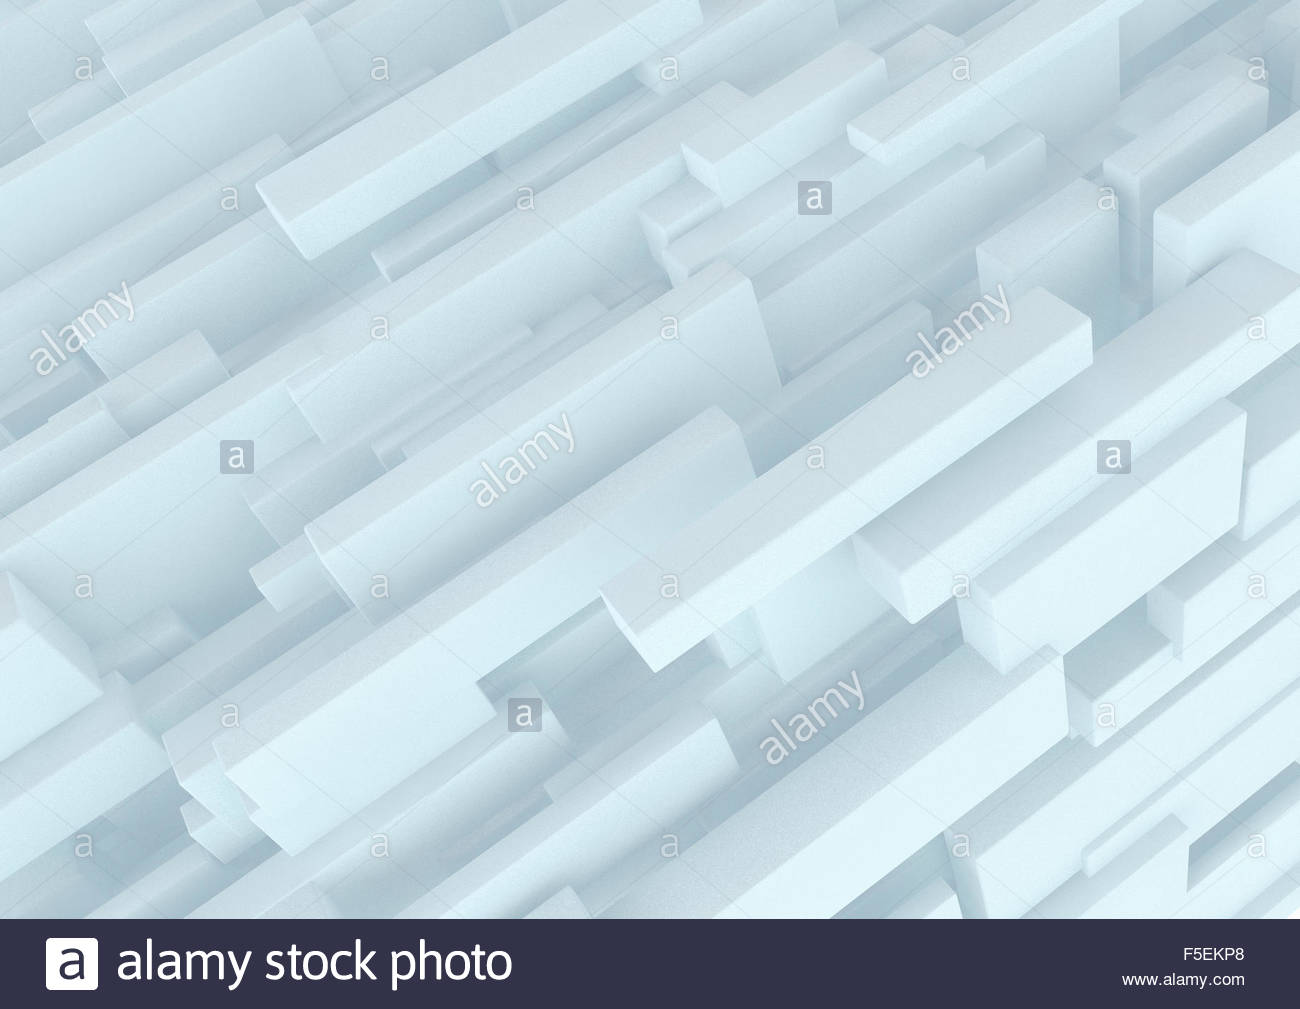 Abstract three dimensional structure of white cuboids - Stock Image